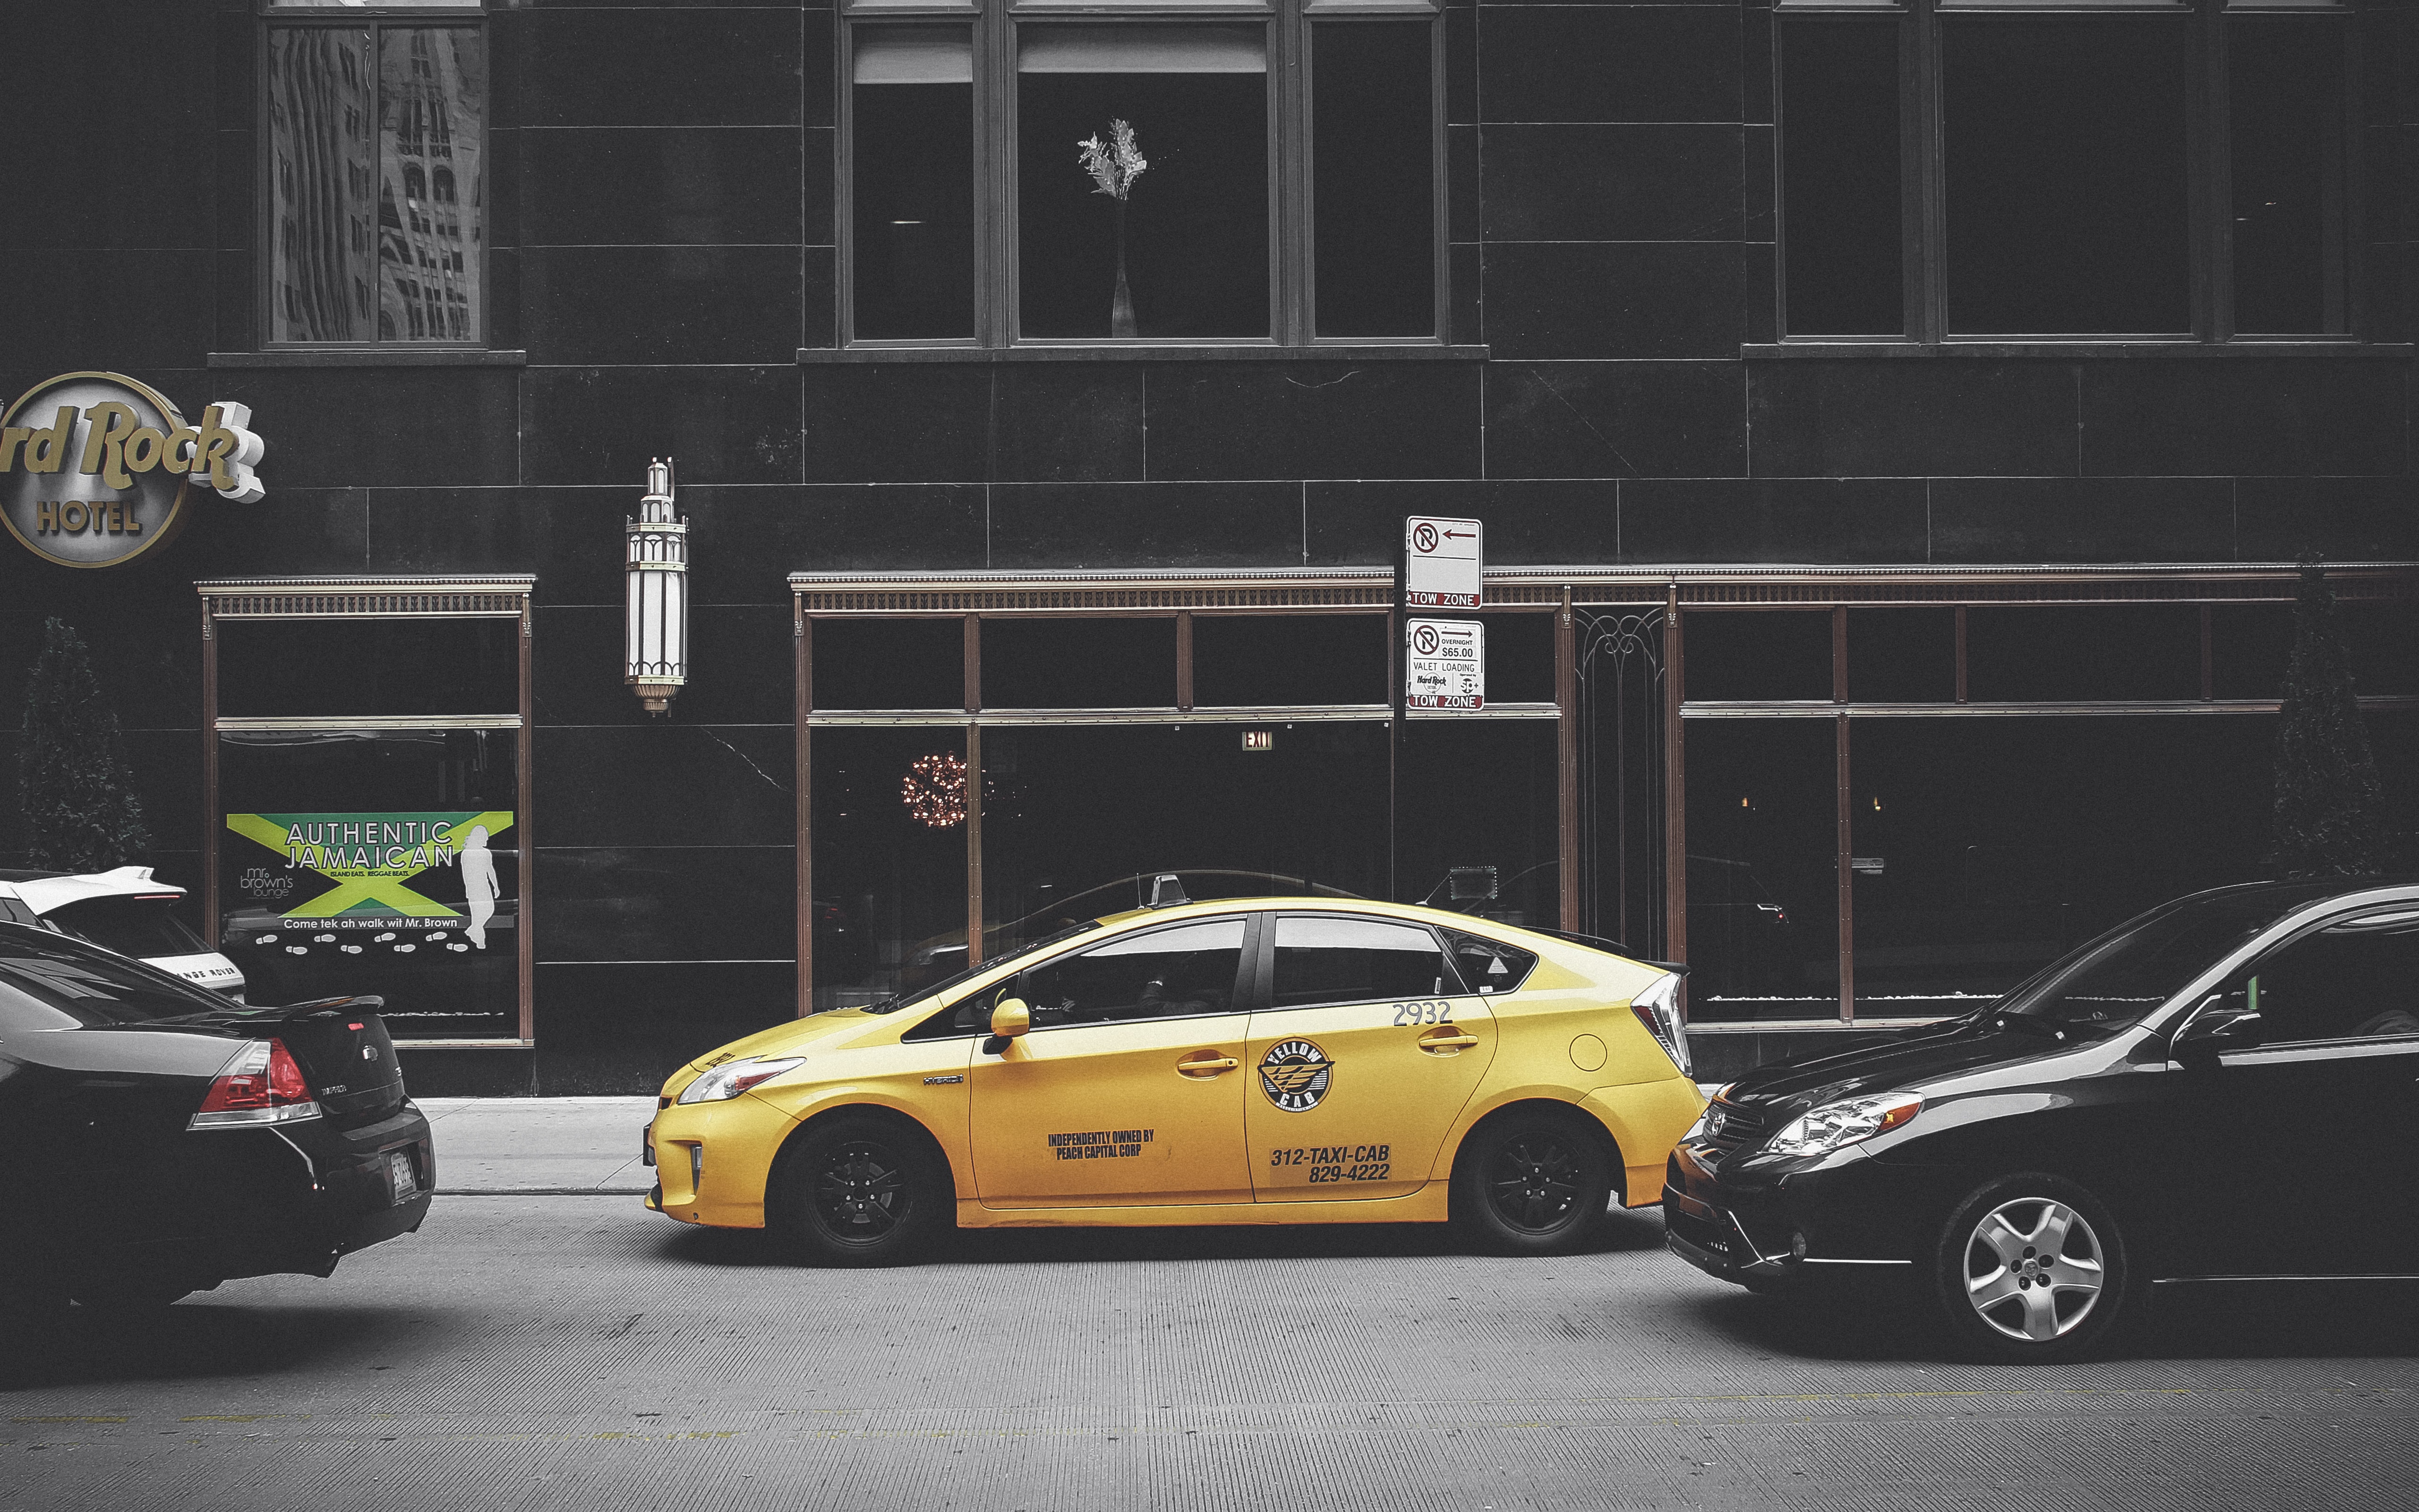 yellow sedan in front of brown building